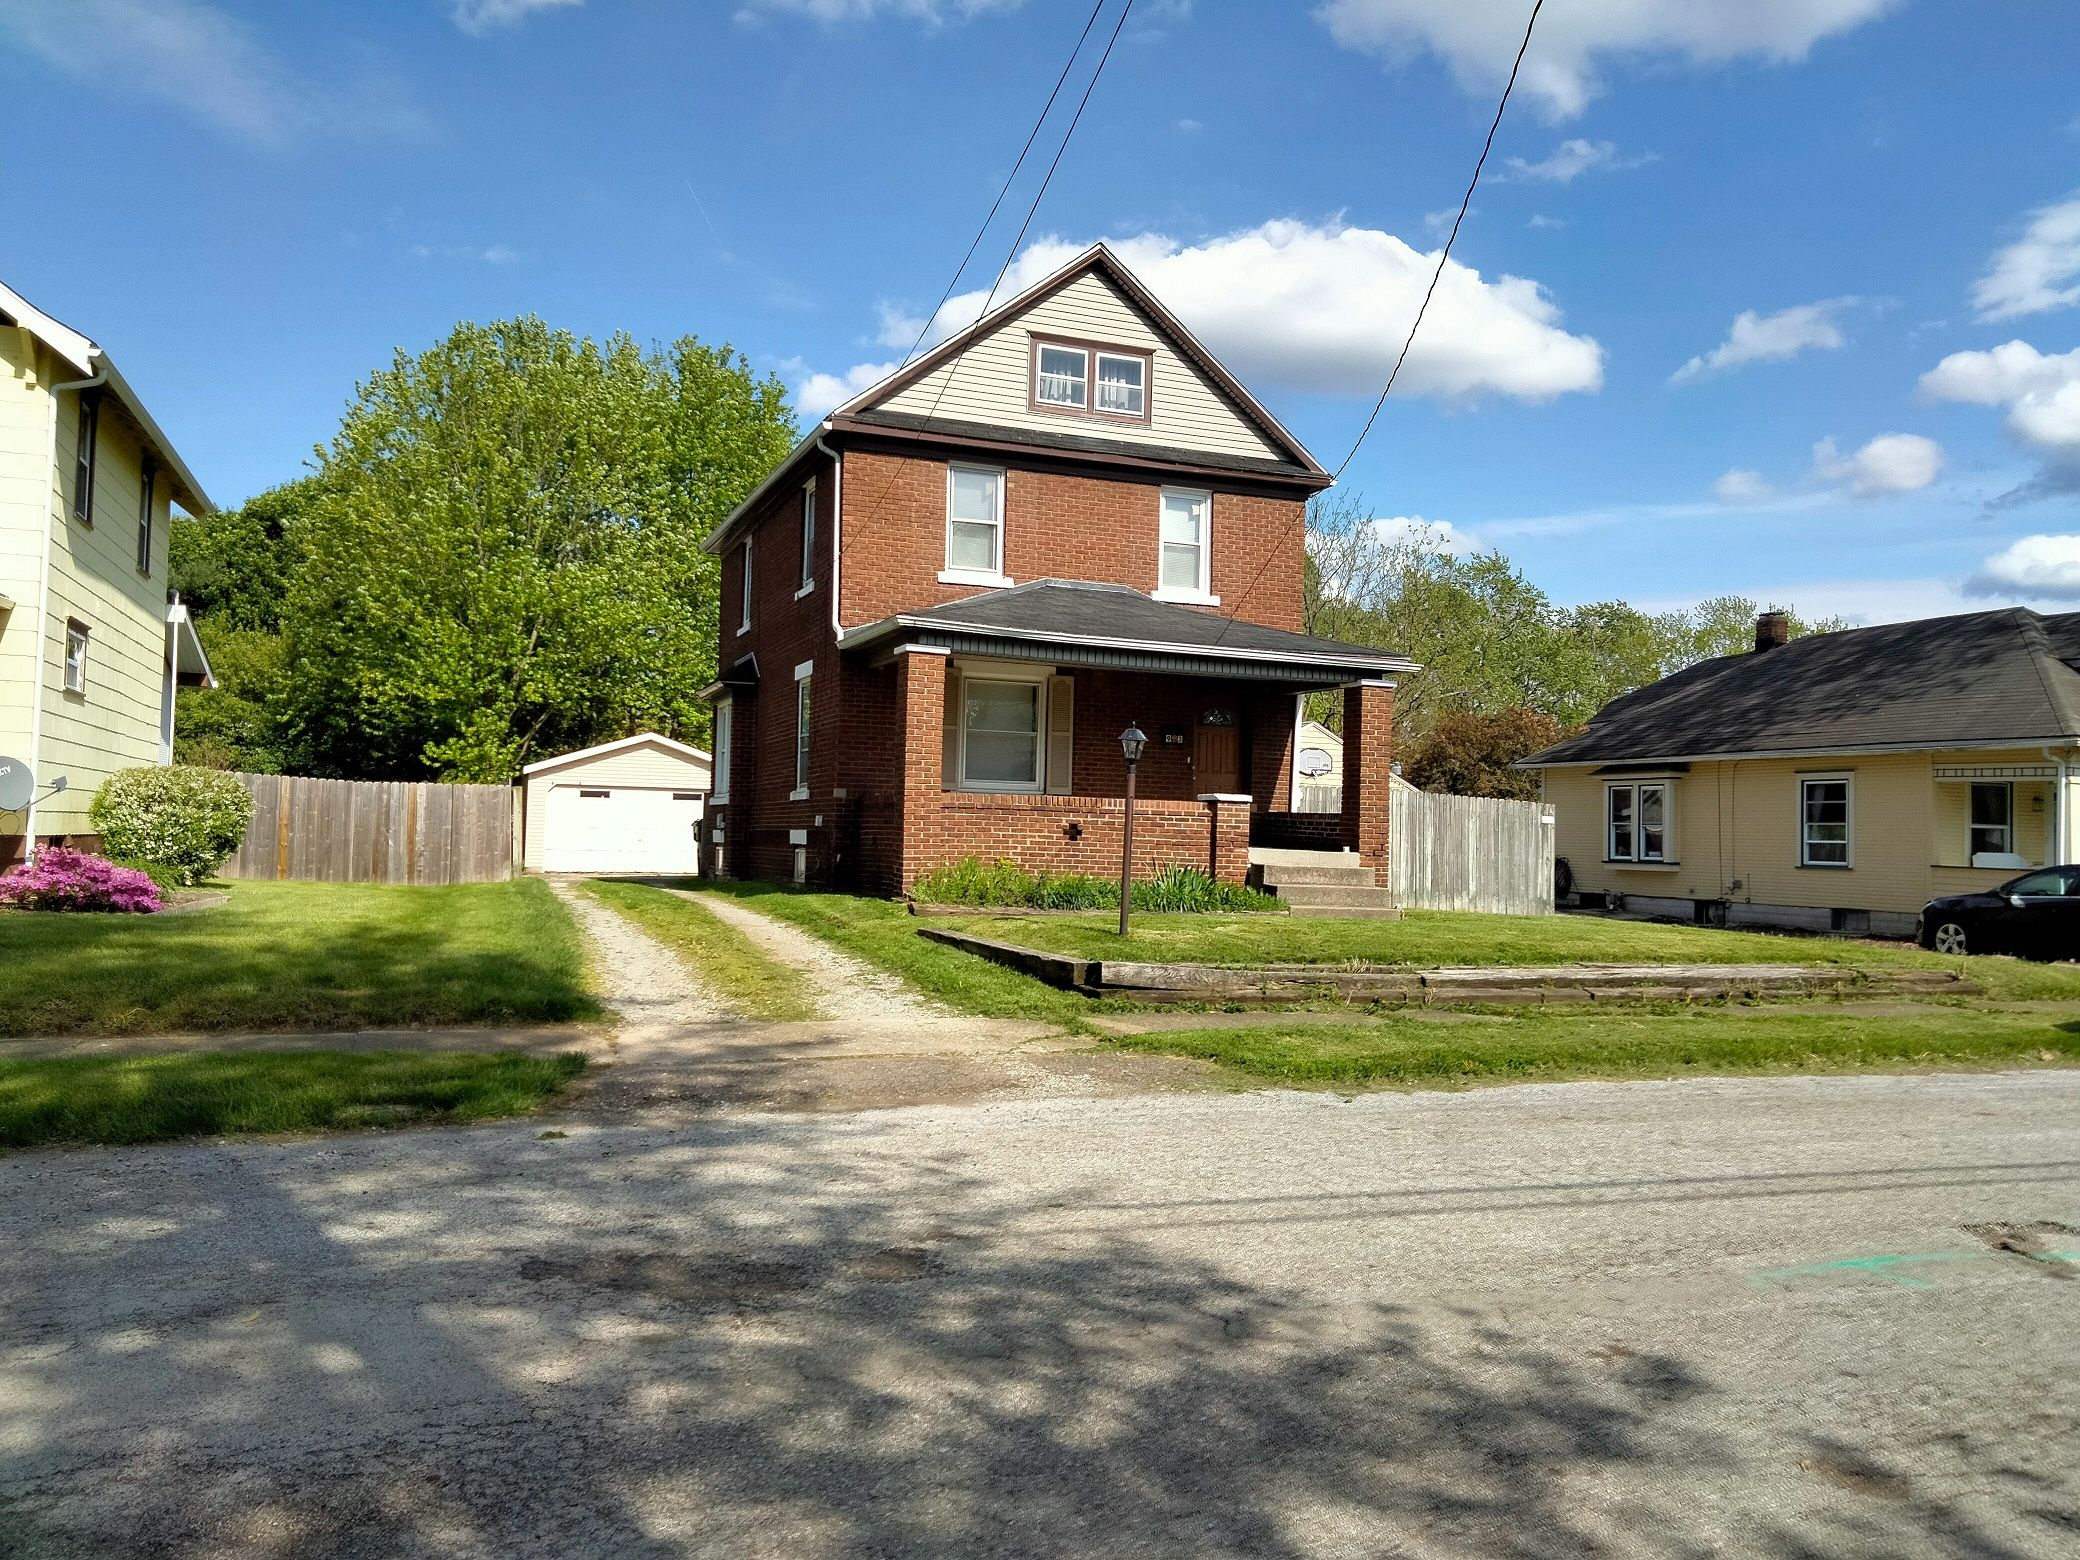 93 28th St NW, Barberton, OH